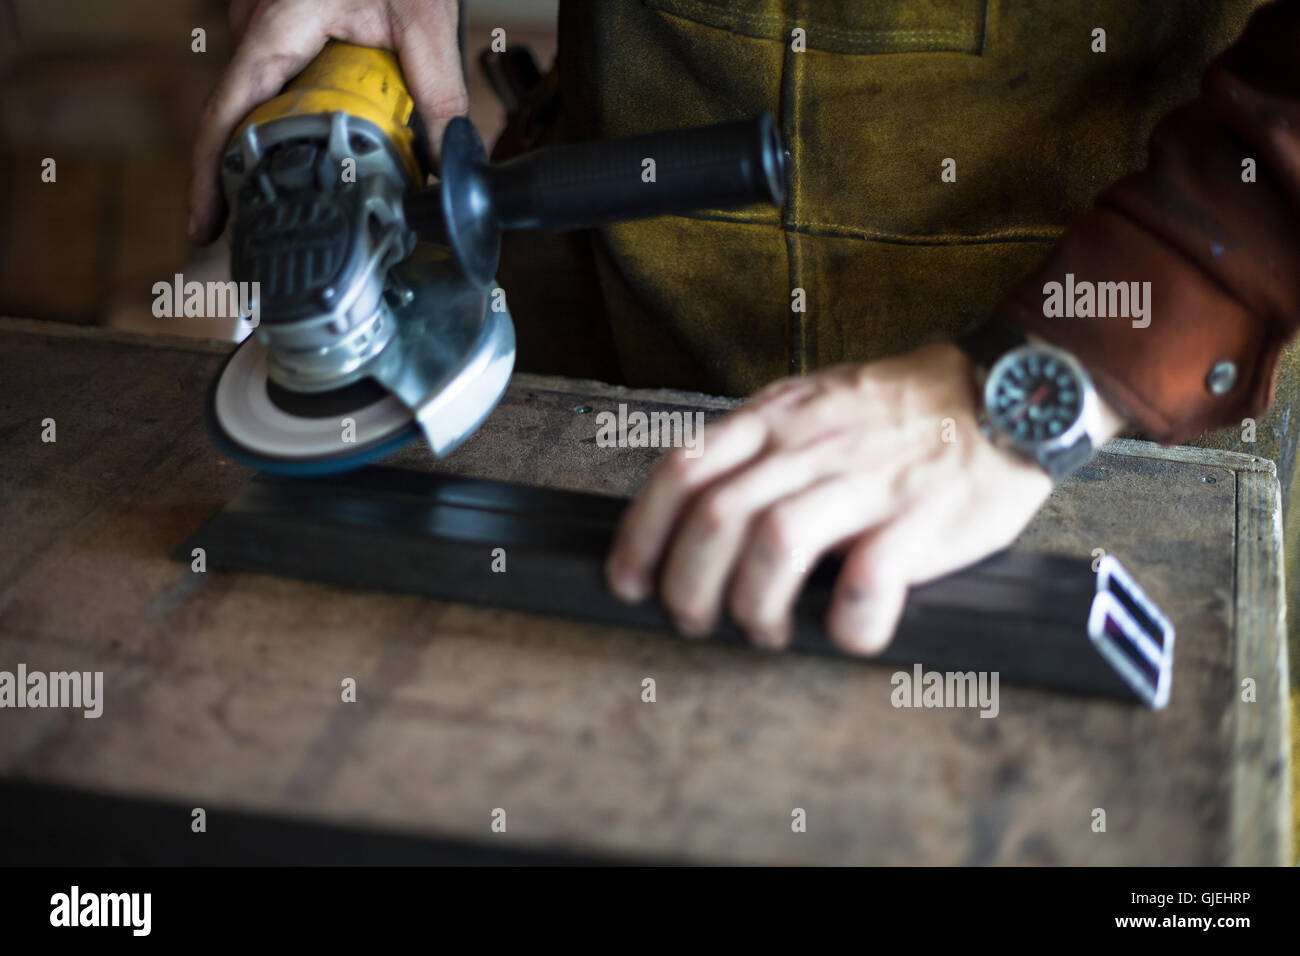 Woodworker grinding metal support structure for table. - Stock Image